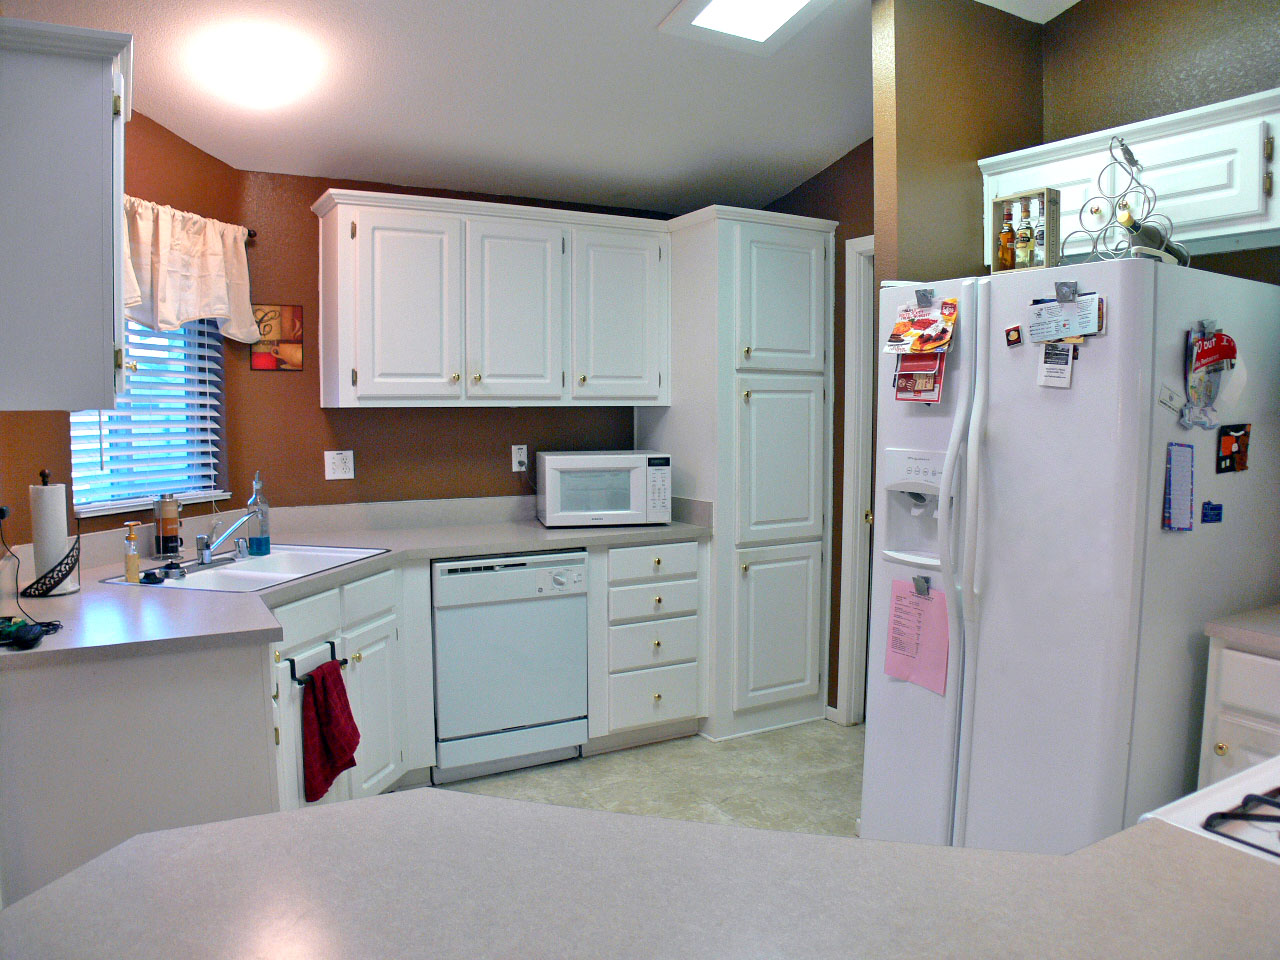 Alternate view of bright and cheery kitchen, with dishwasher, pantry, and doorway into separate laundry room.